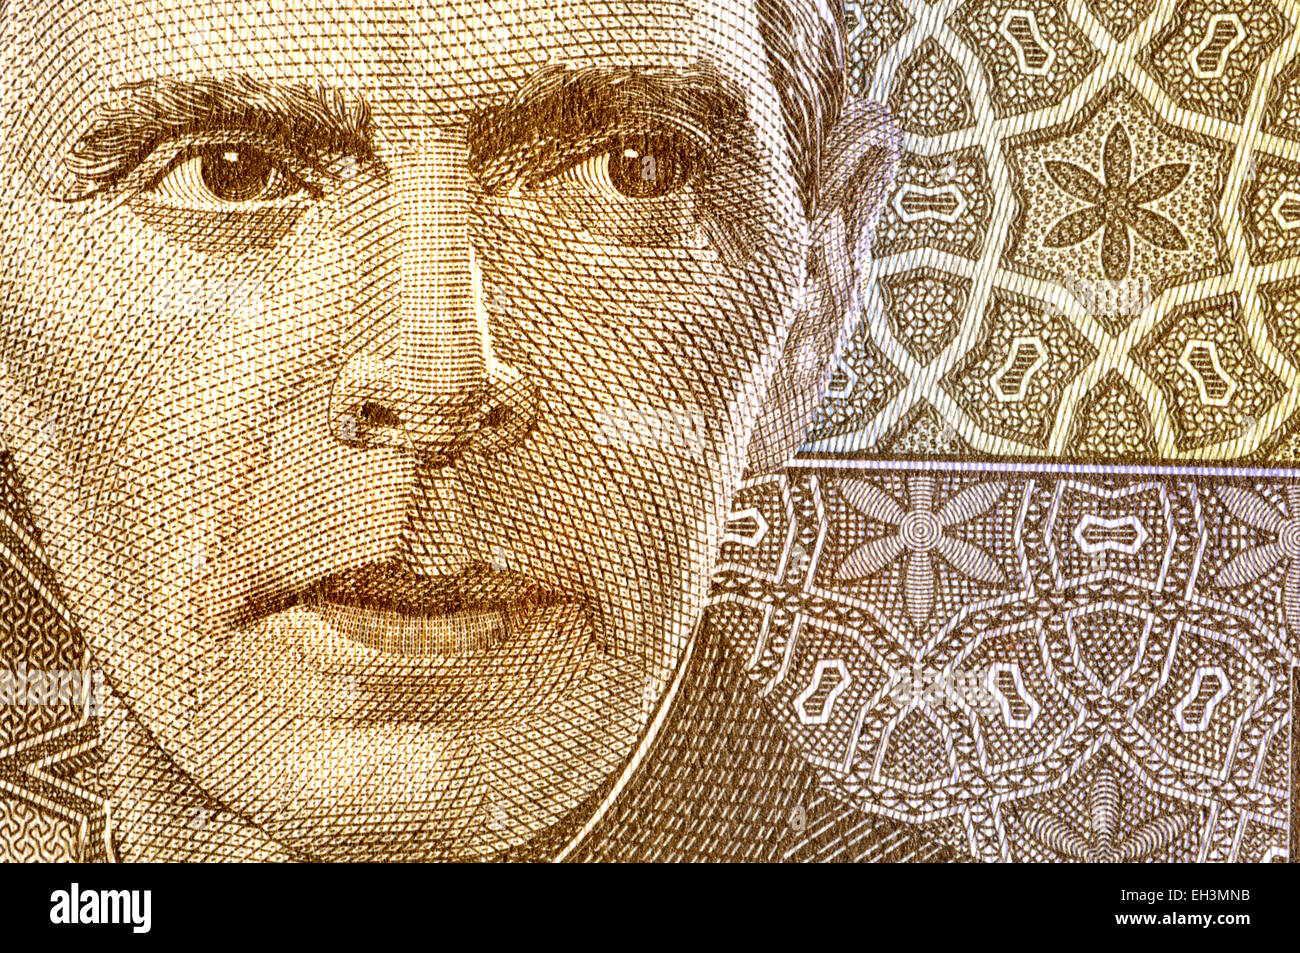 Detail from a 2009 Pakistan five rupee banknote showing Muhammad Ali Jinnah (1876-1948: founder of Pakistan) - Stock Image